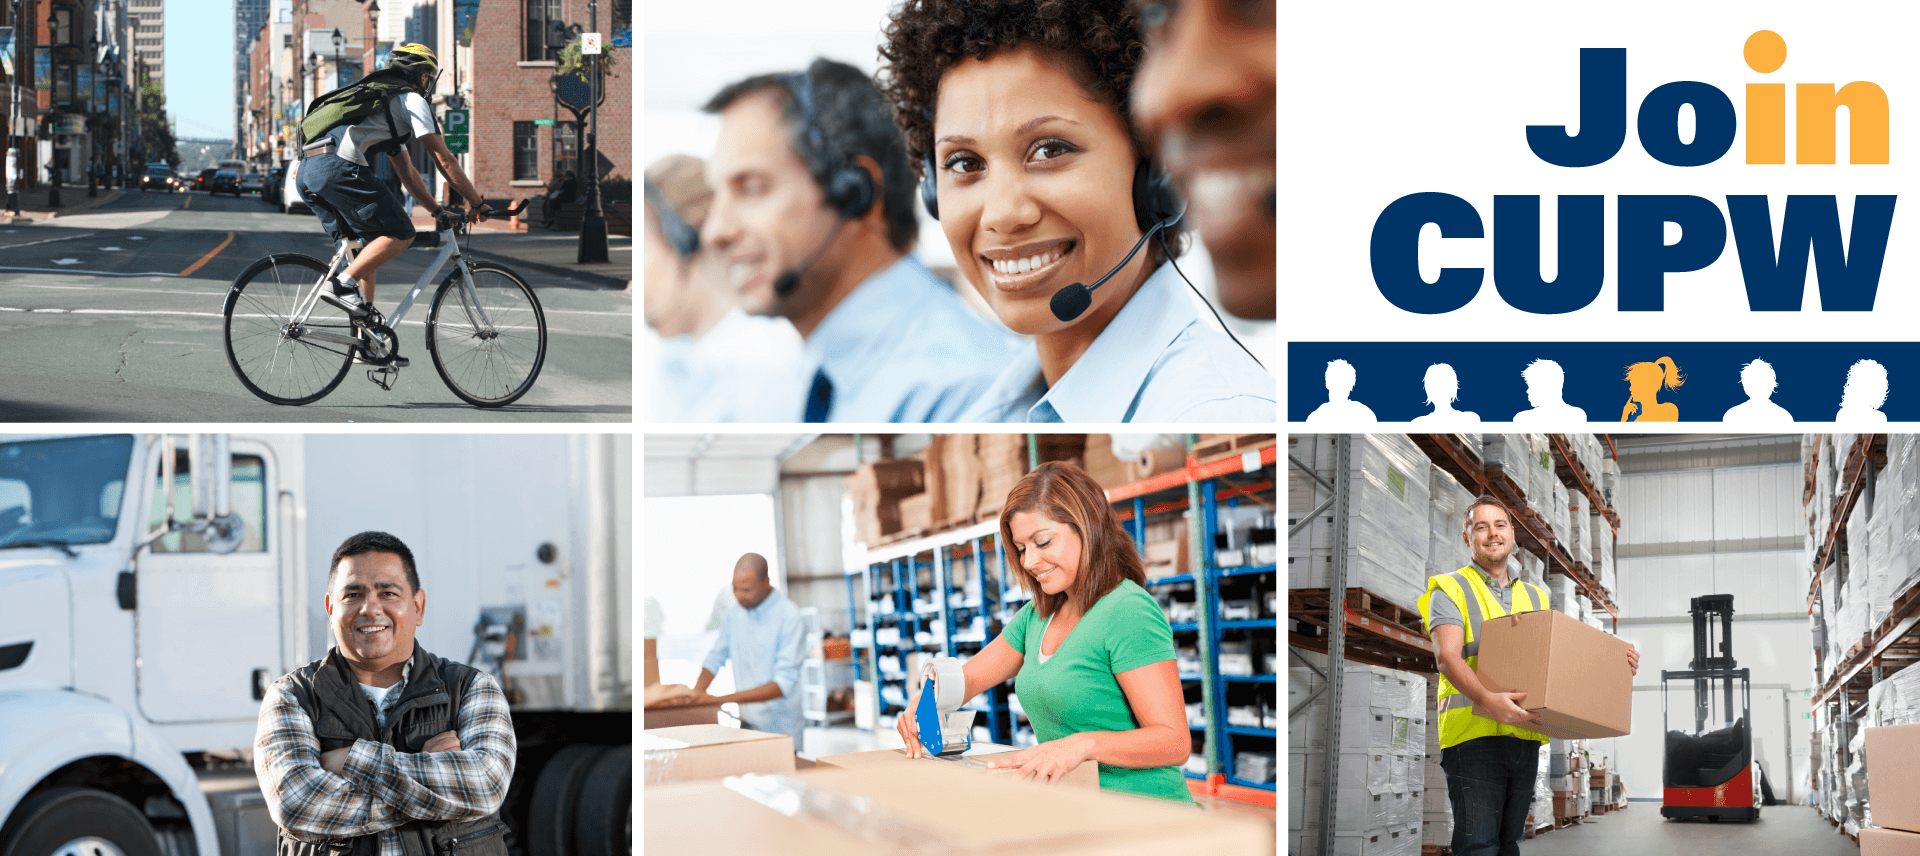 Image group: Bicycle courier, truck driver, call centre worker, warehouse workers